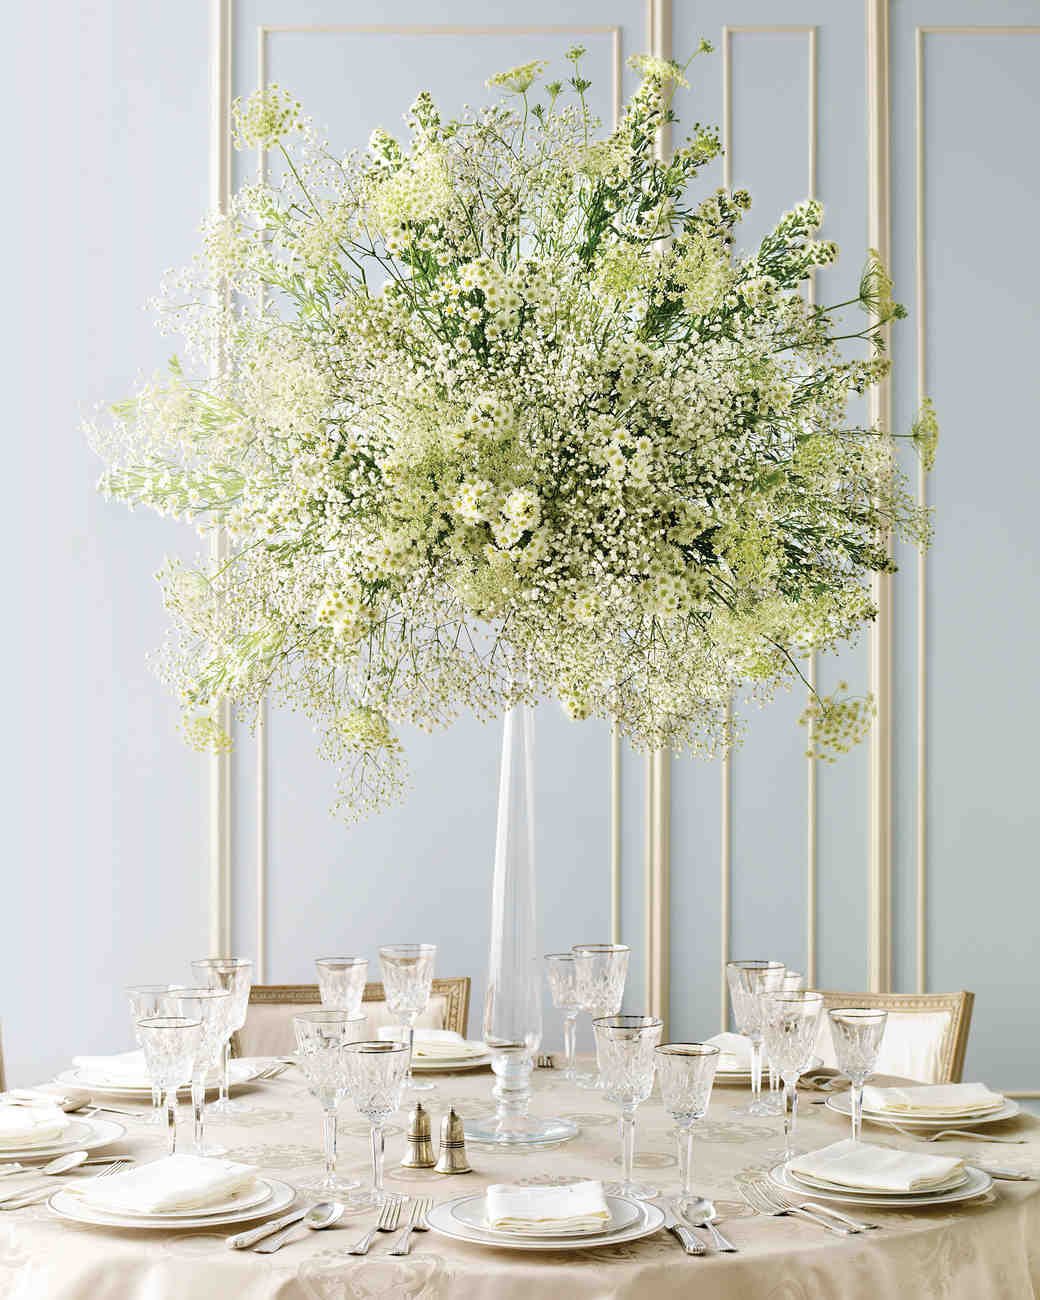 Elegant and inexpensive wedding flower ideas martha for Floral arrangements for wedding reception centerpieces